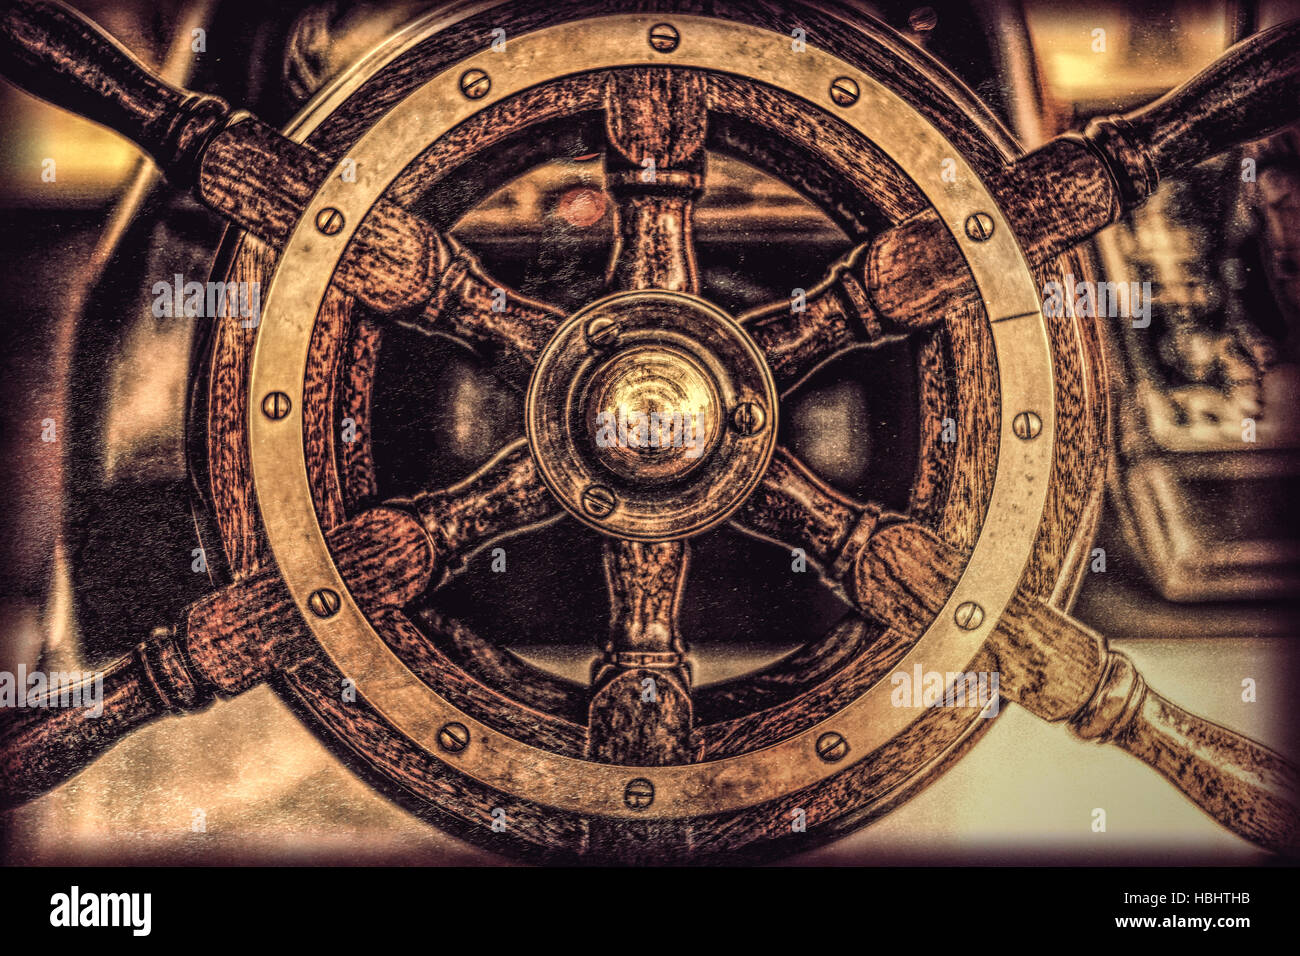 Ship steering wheel close up - Stock Image